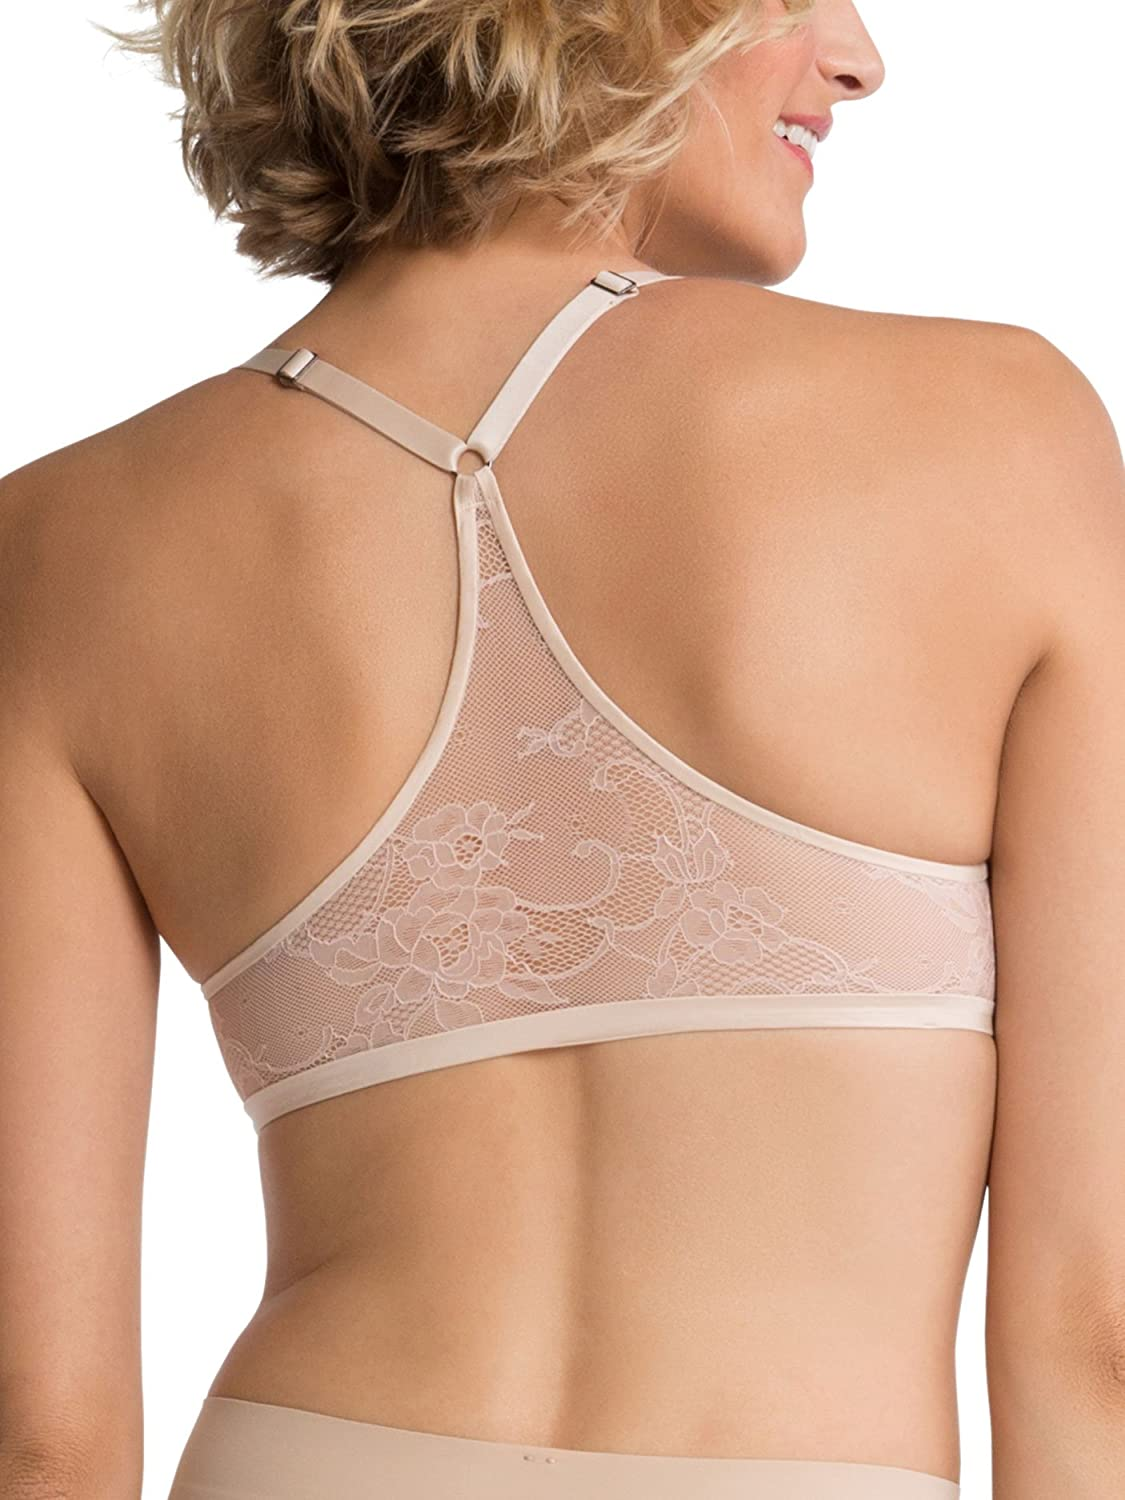 698dad8c953 SPANX Women s Pillow Cup Lace Racer Back Bra  Amazon.ca  Clothing    Accessories